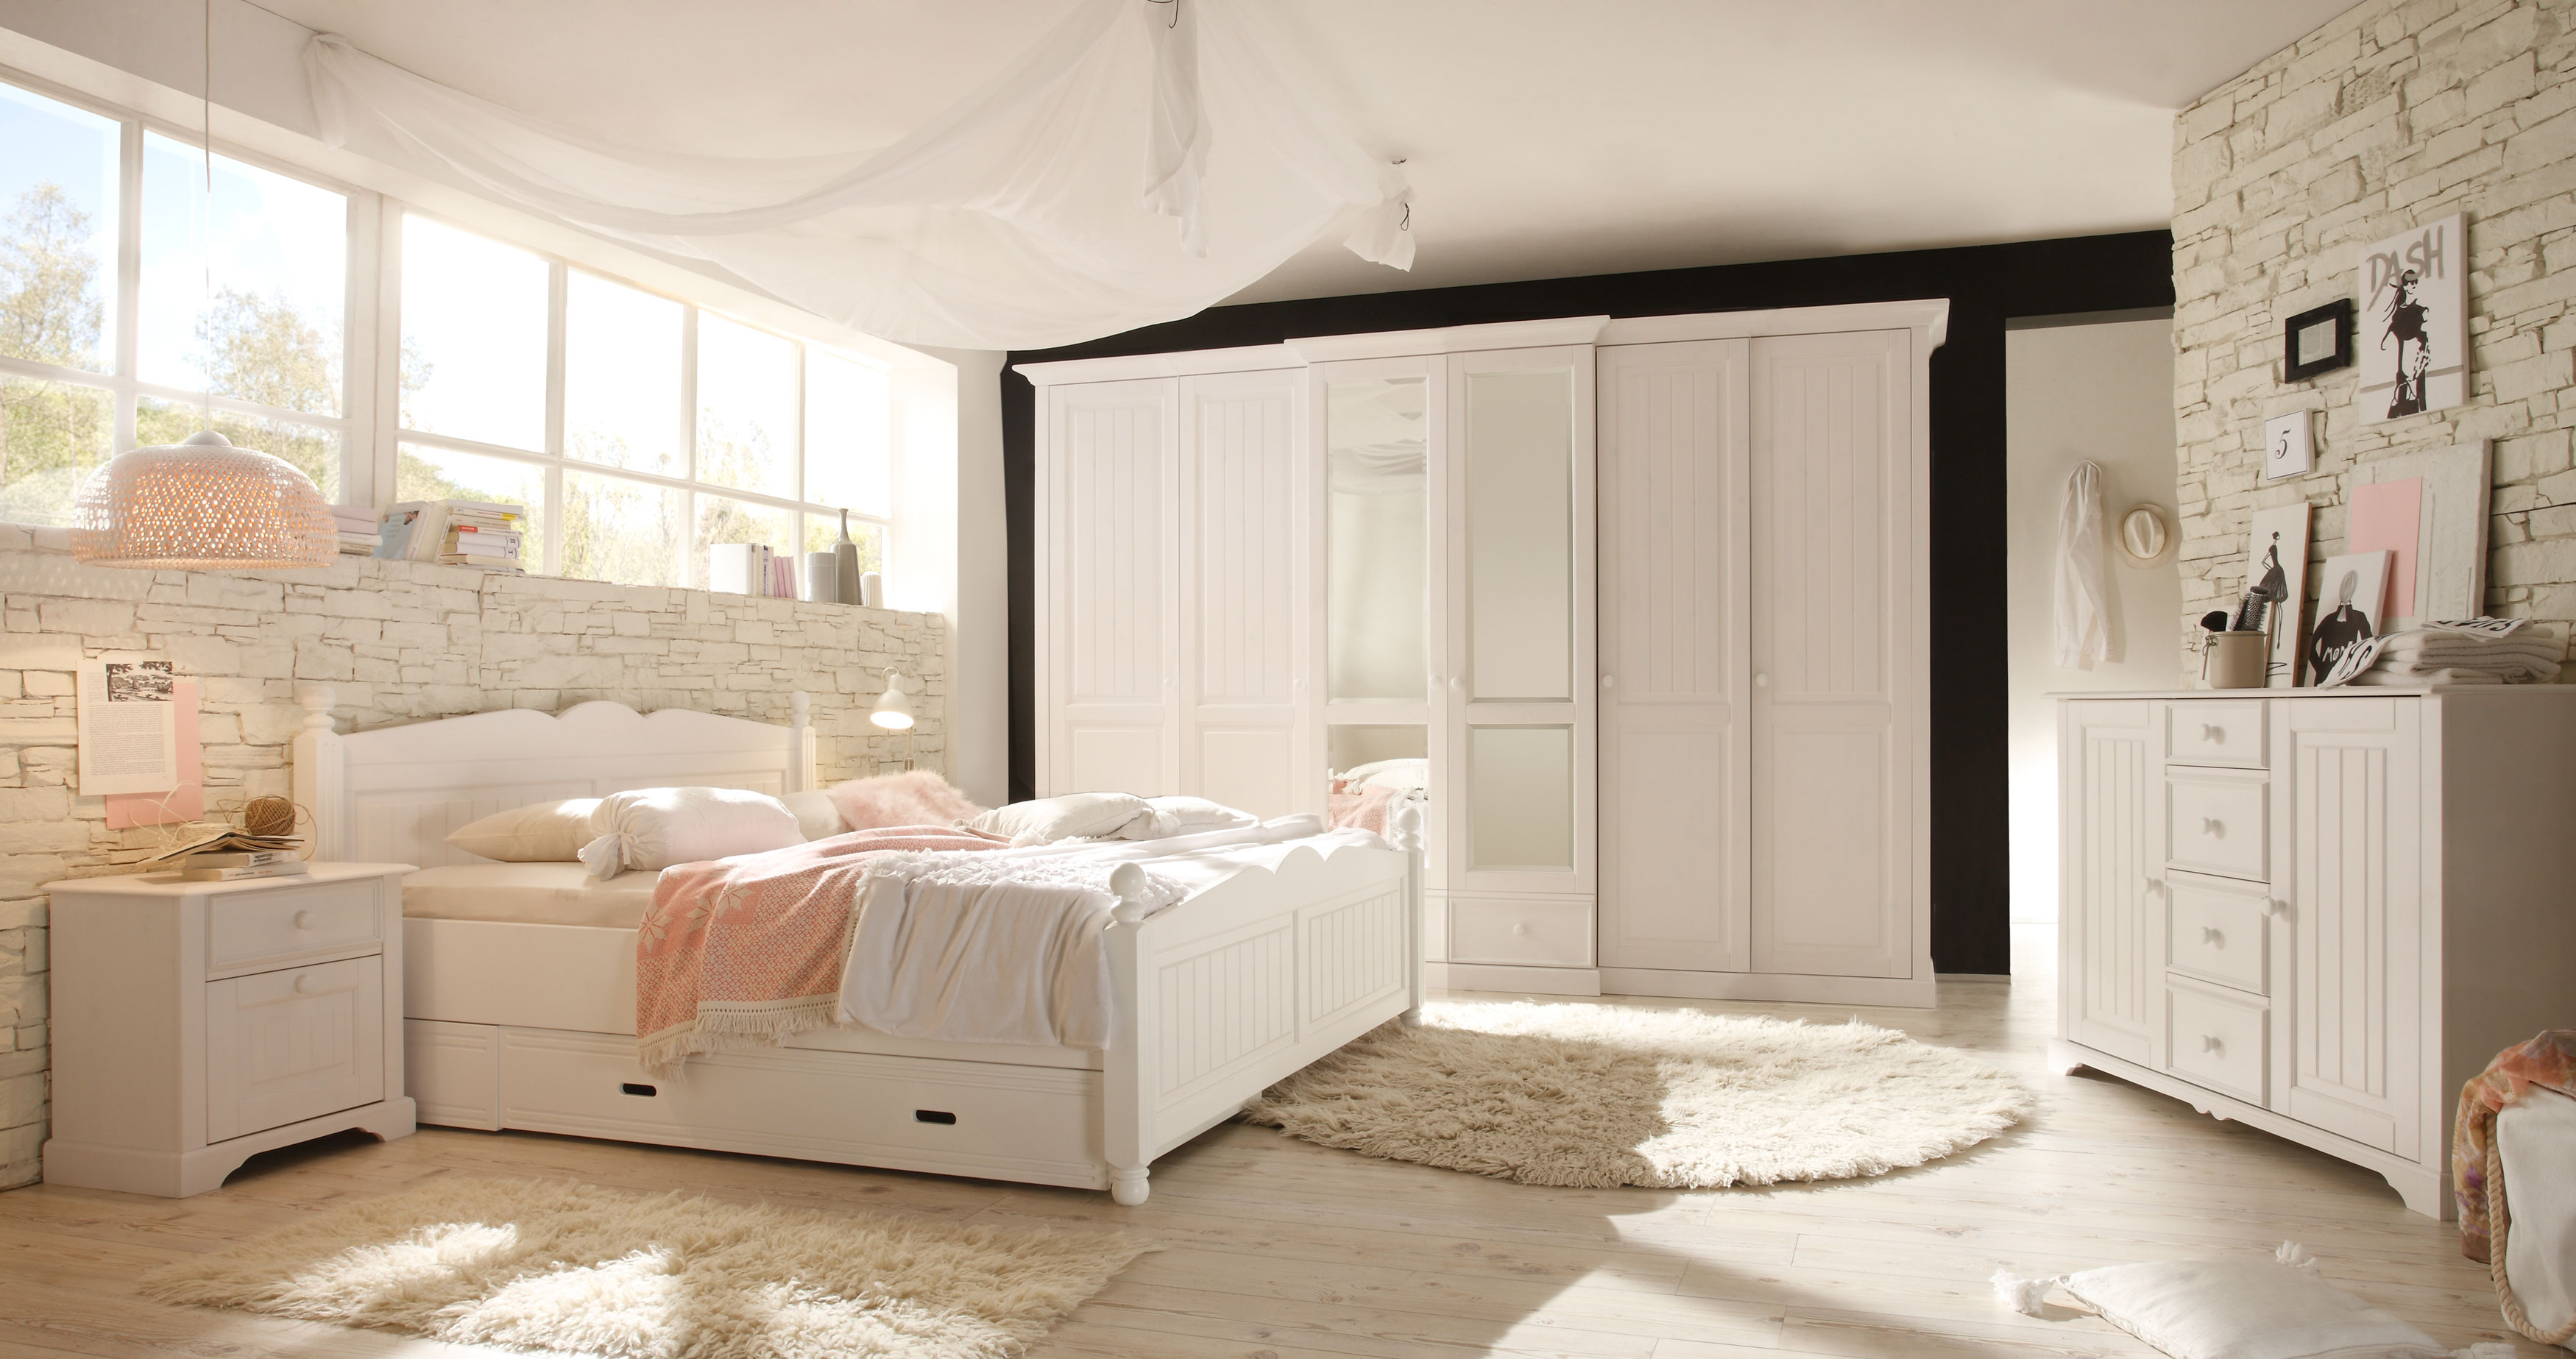 schlafzimmer komplett g nstig online kaufen m belmeile24. Black Bedroom Furniture Sets. Home Design Ideas